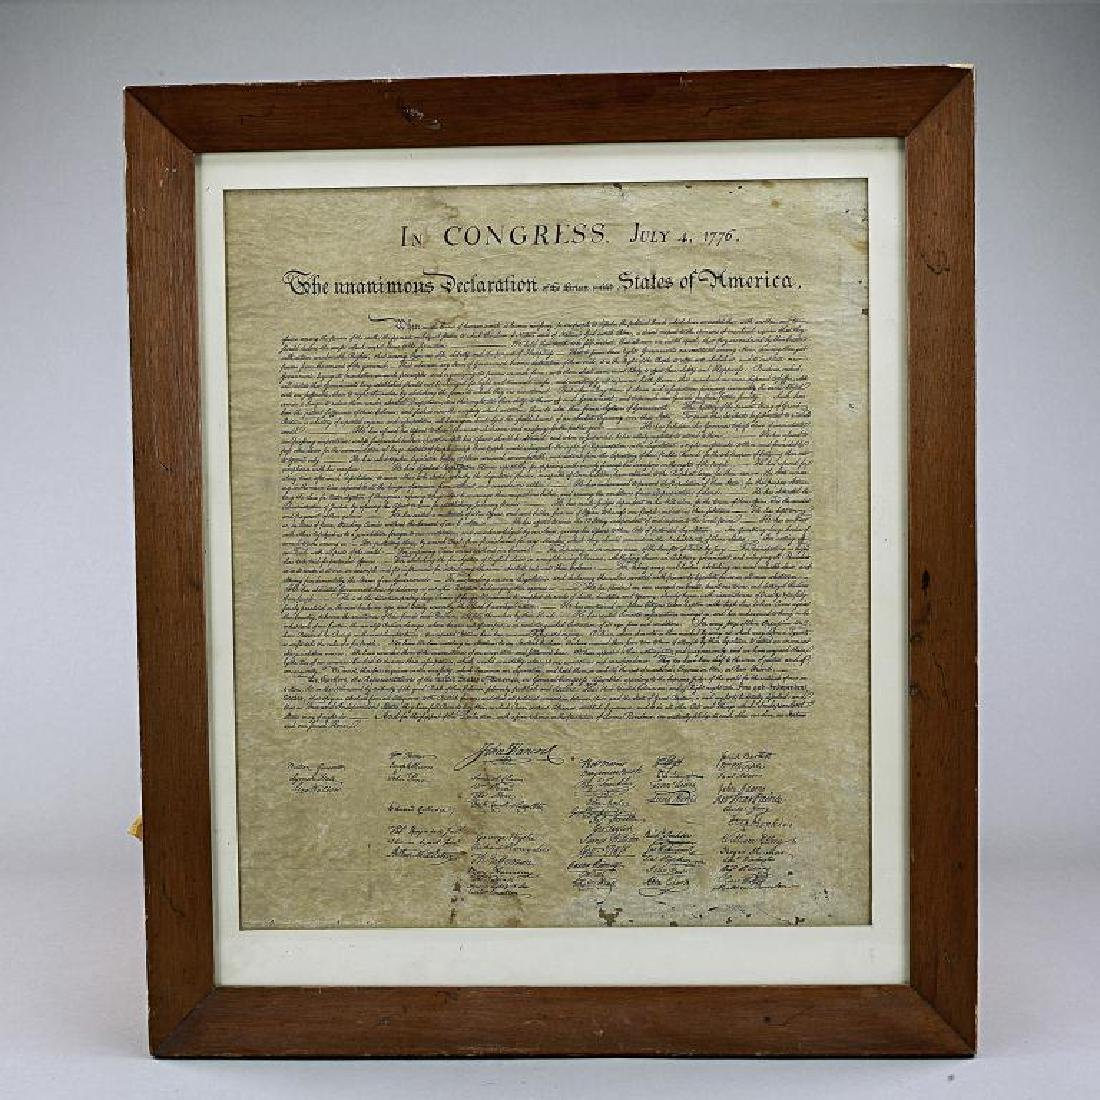 FRAMED PRINT OF THE DECLARATION OF INDEPENDENCE